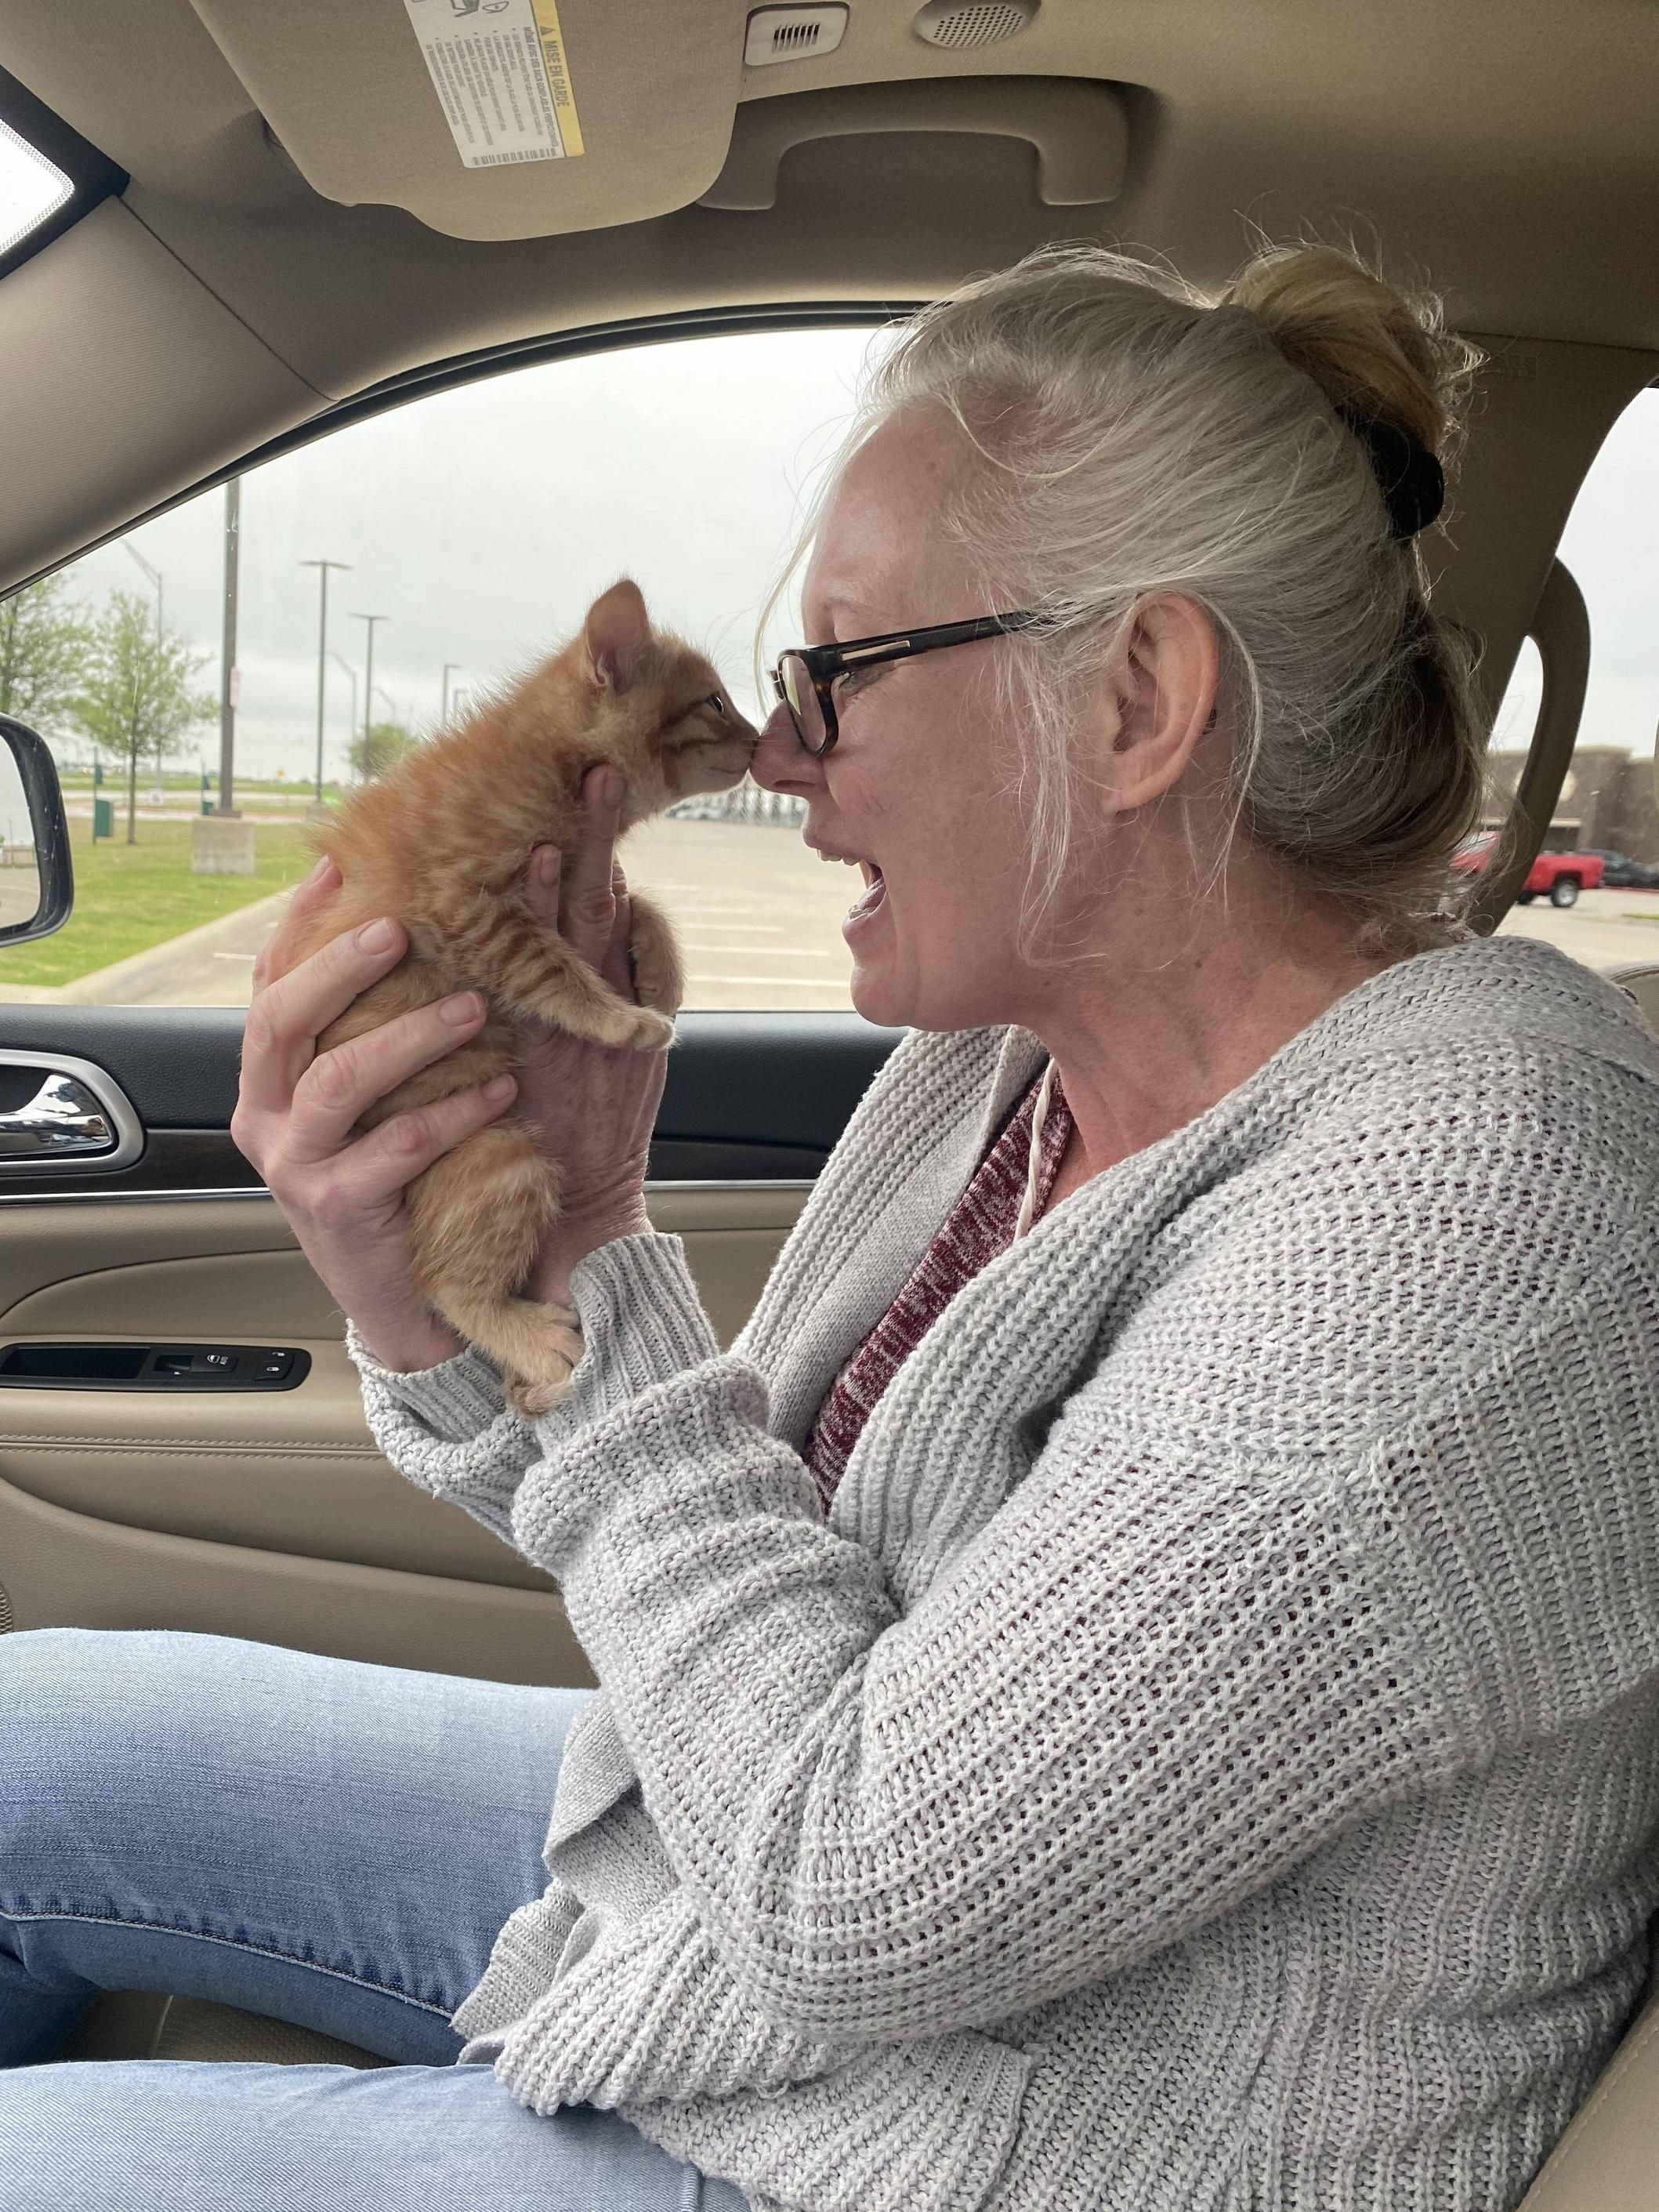 My Mom Meeting Her Dream Kitten For The First Time Today In 2020 Getting A Kitten Aww Pregnant Cat